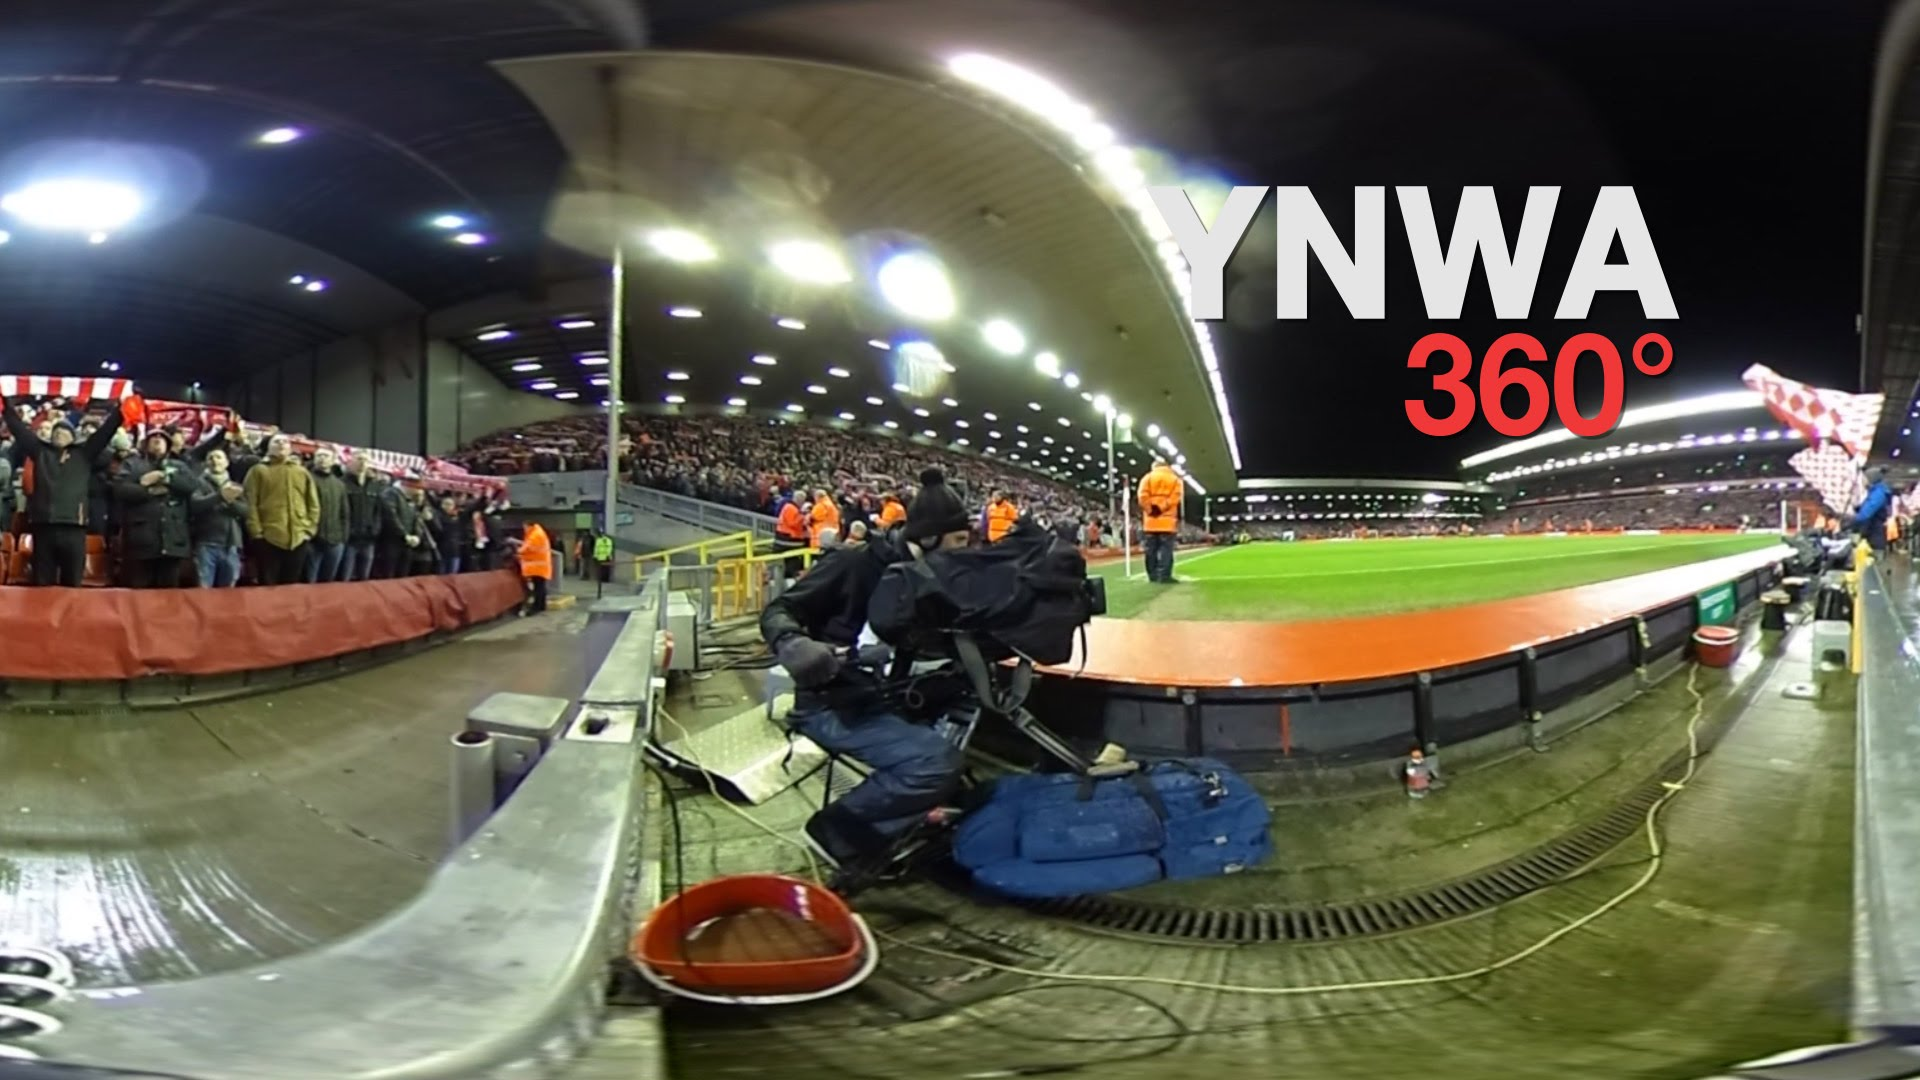 Experience You'll Never Walk Alone At Anfield In Full 360°